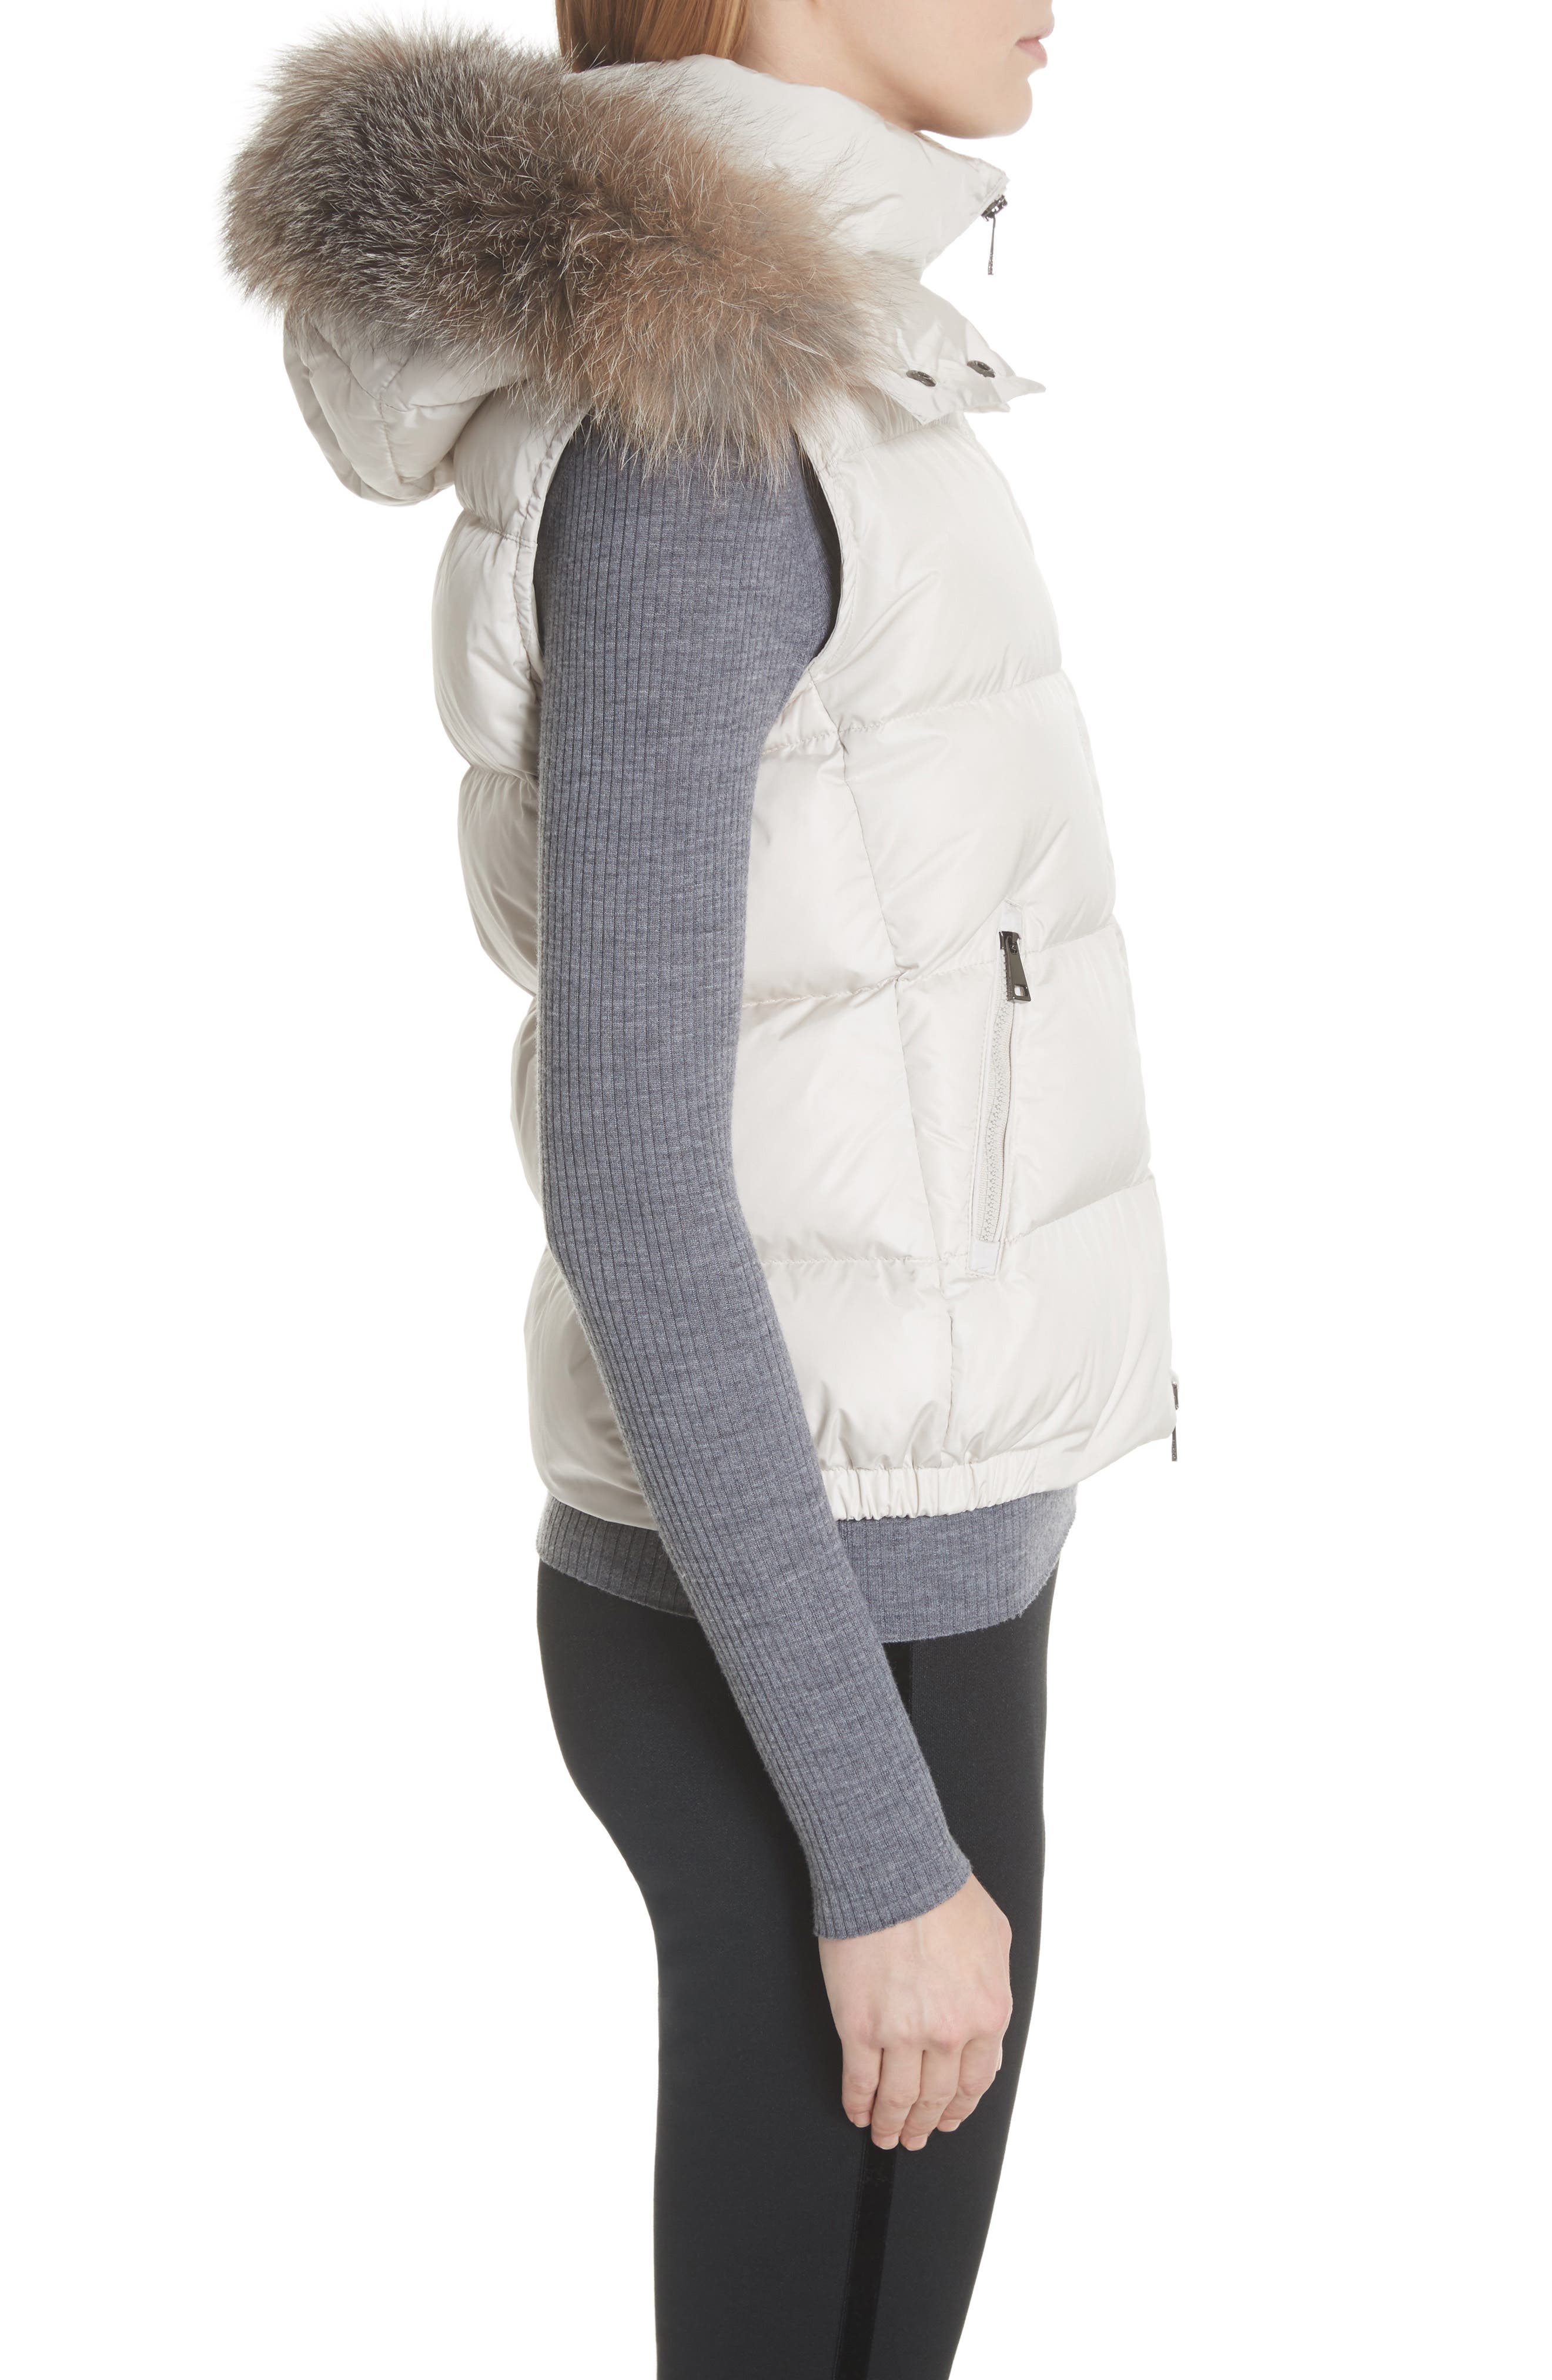 Gallinule Quilted Down Vest with Detachable Genuine Fox Fur Trim Hood,                             Alternate thumbnail 4, color,                             CHAMPAGNE